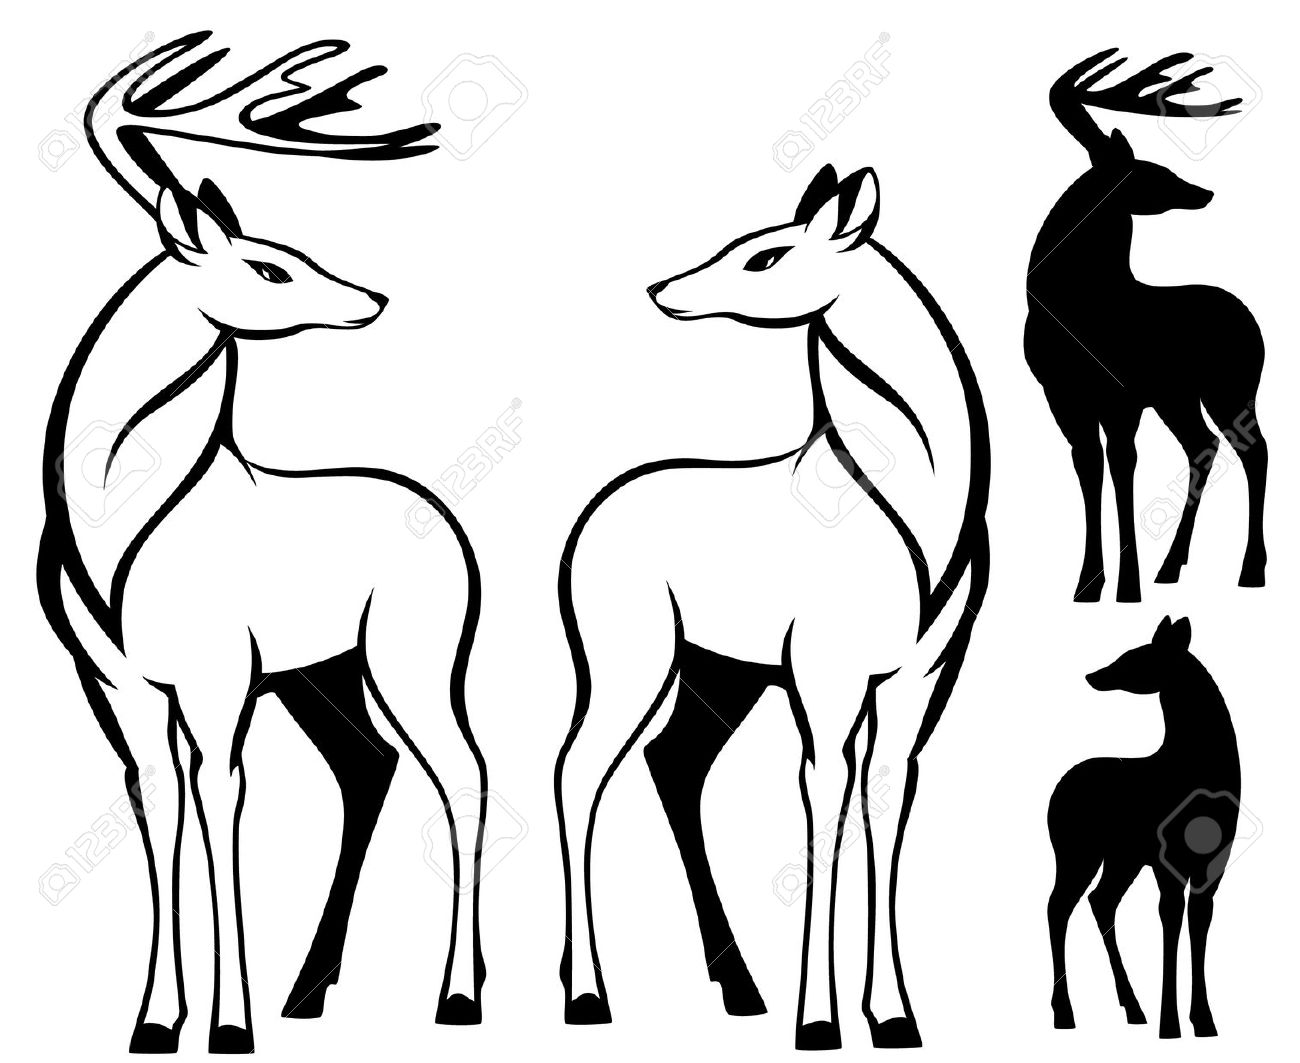 15,424 Deer Silhouette Cliparts, Stock Vector And Royalty Free.